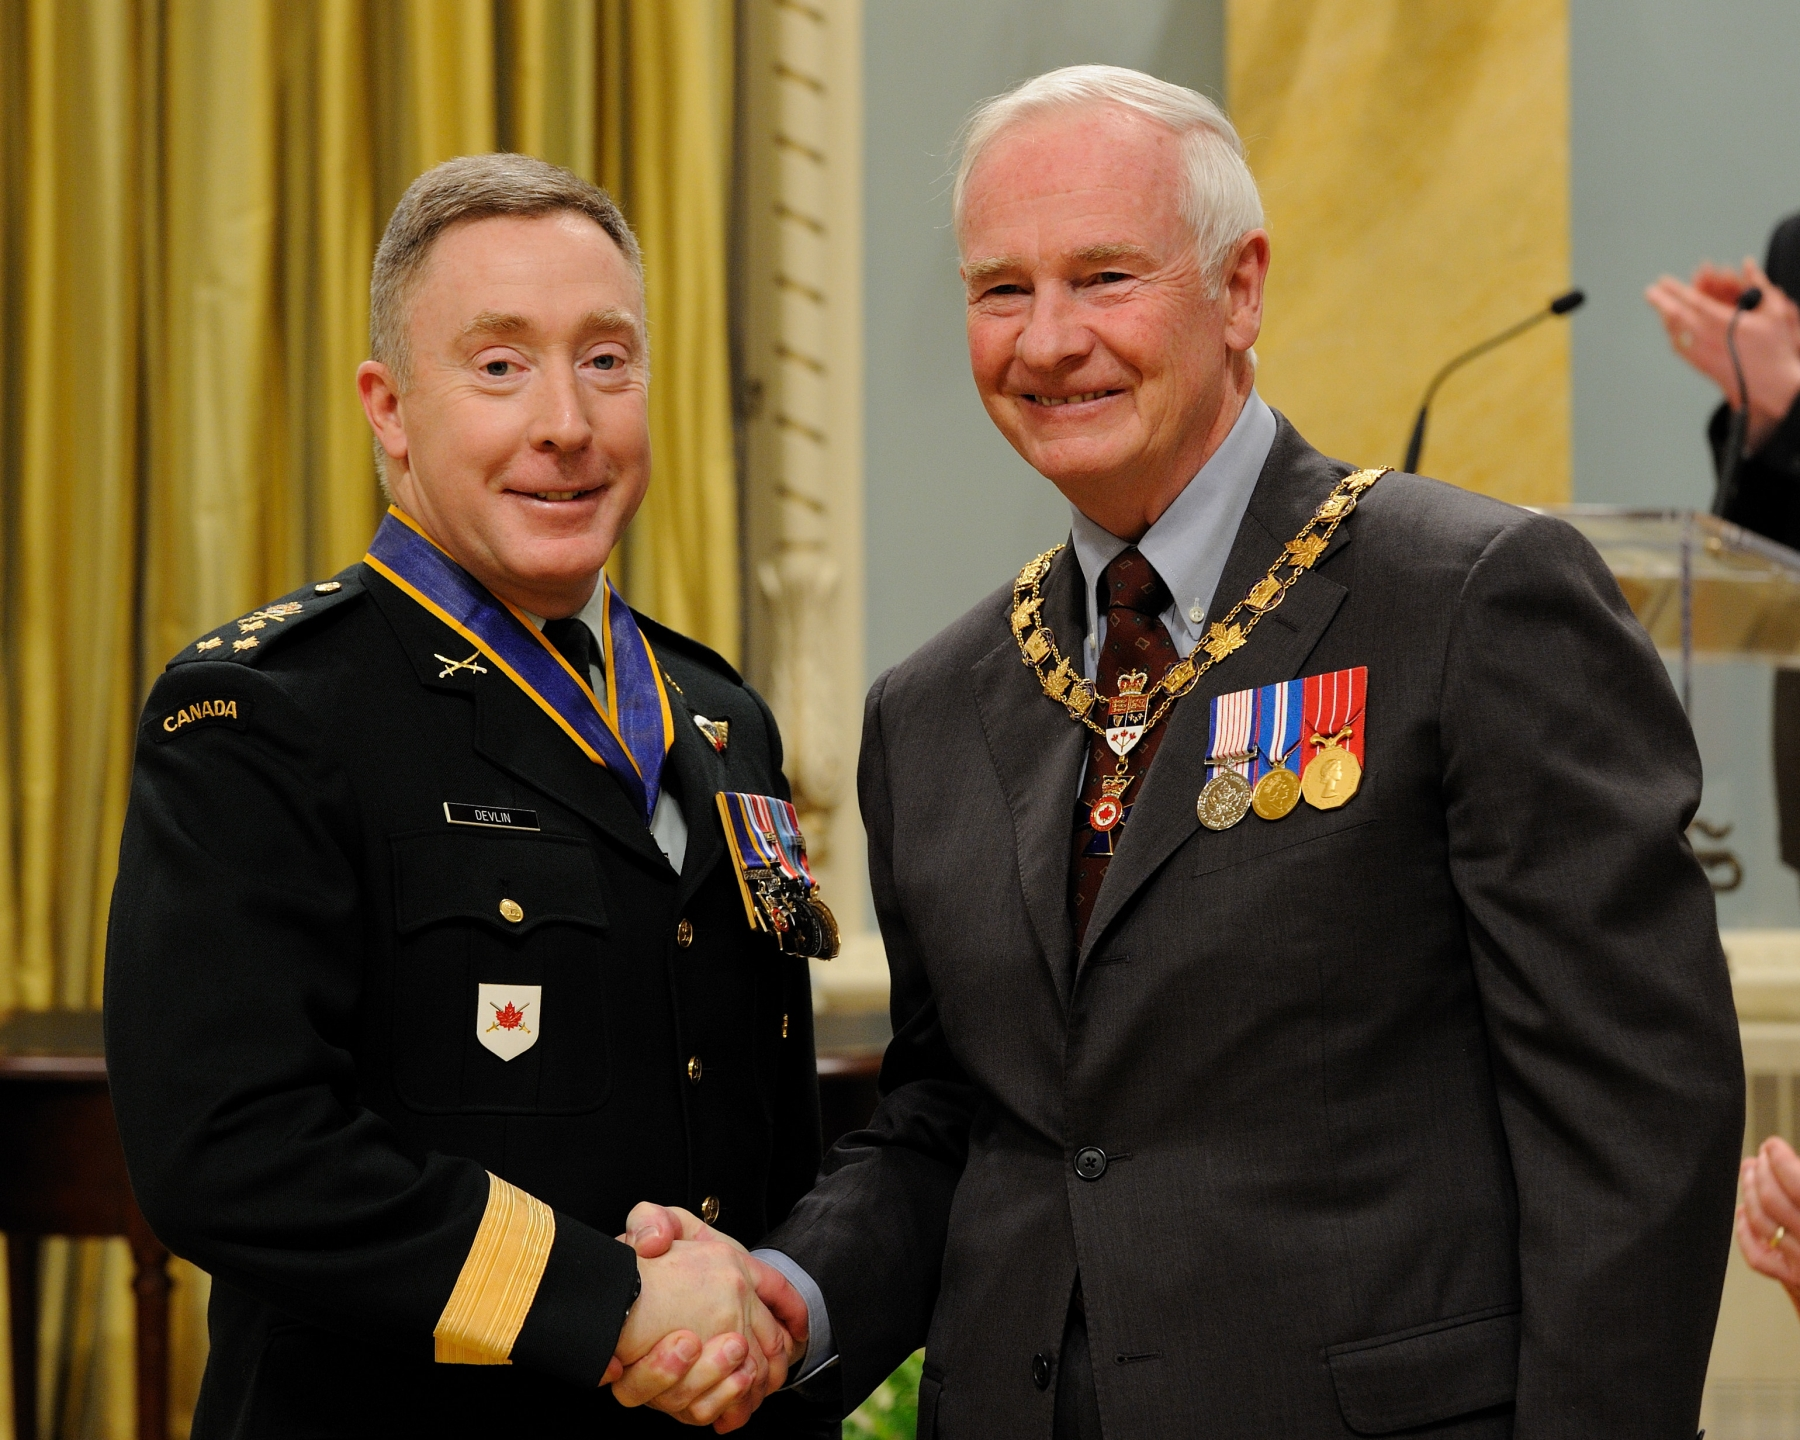 His Excellency presented the Order of Military Merit at the Commander level (C.M.M.) to Major-General Peter Devlin, C.M.M., M.S.C., C.D., Canadian Expeditionary Force Command Headquarters, Ottawa, Ontario. This is a promotion within the Order.